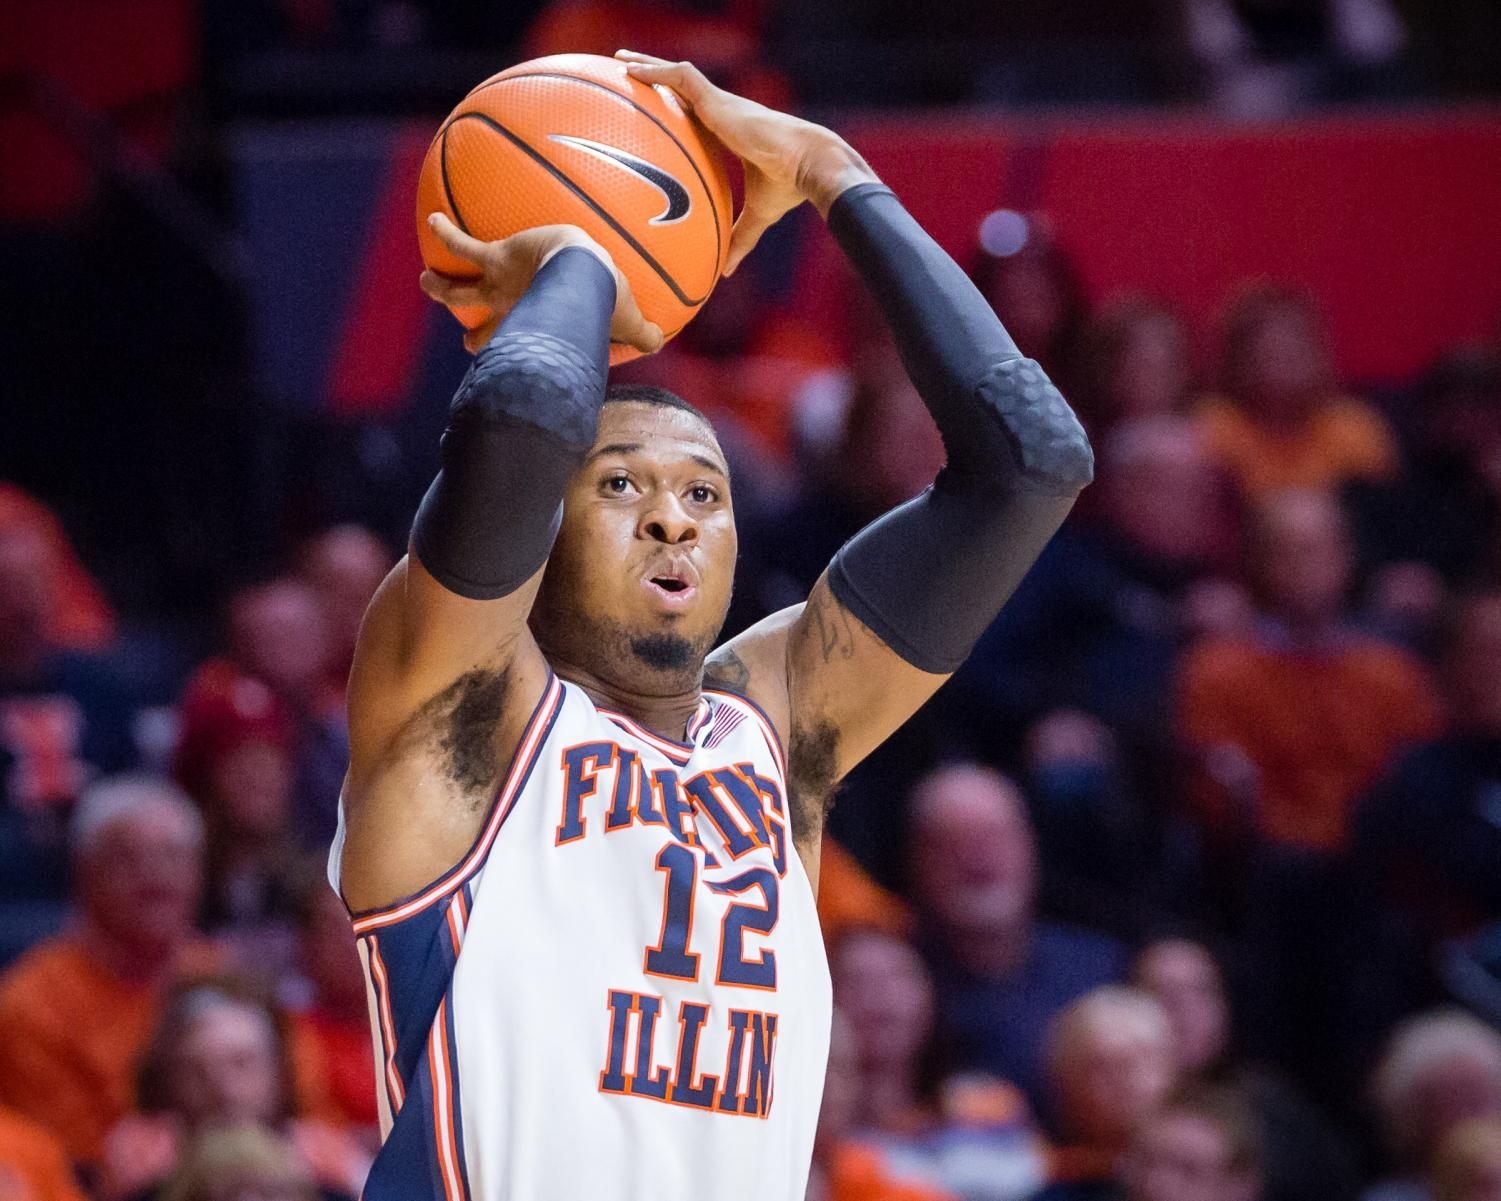 Illinois forward Leron Black shoots a three during the game against Indiana at State Farm Center on Wednesday, Jan. 24. The Illini won 73-71.